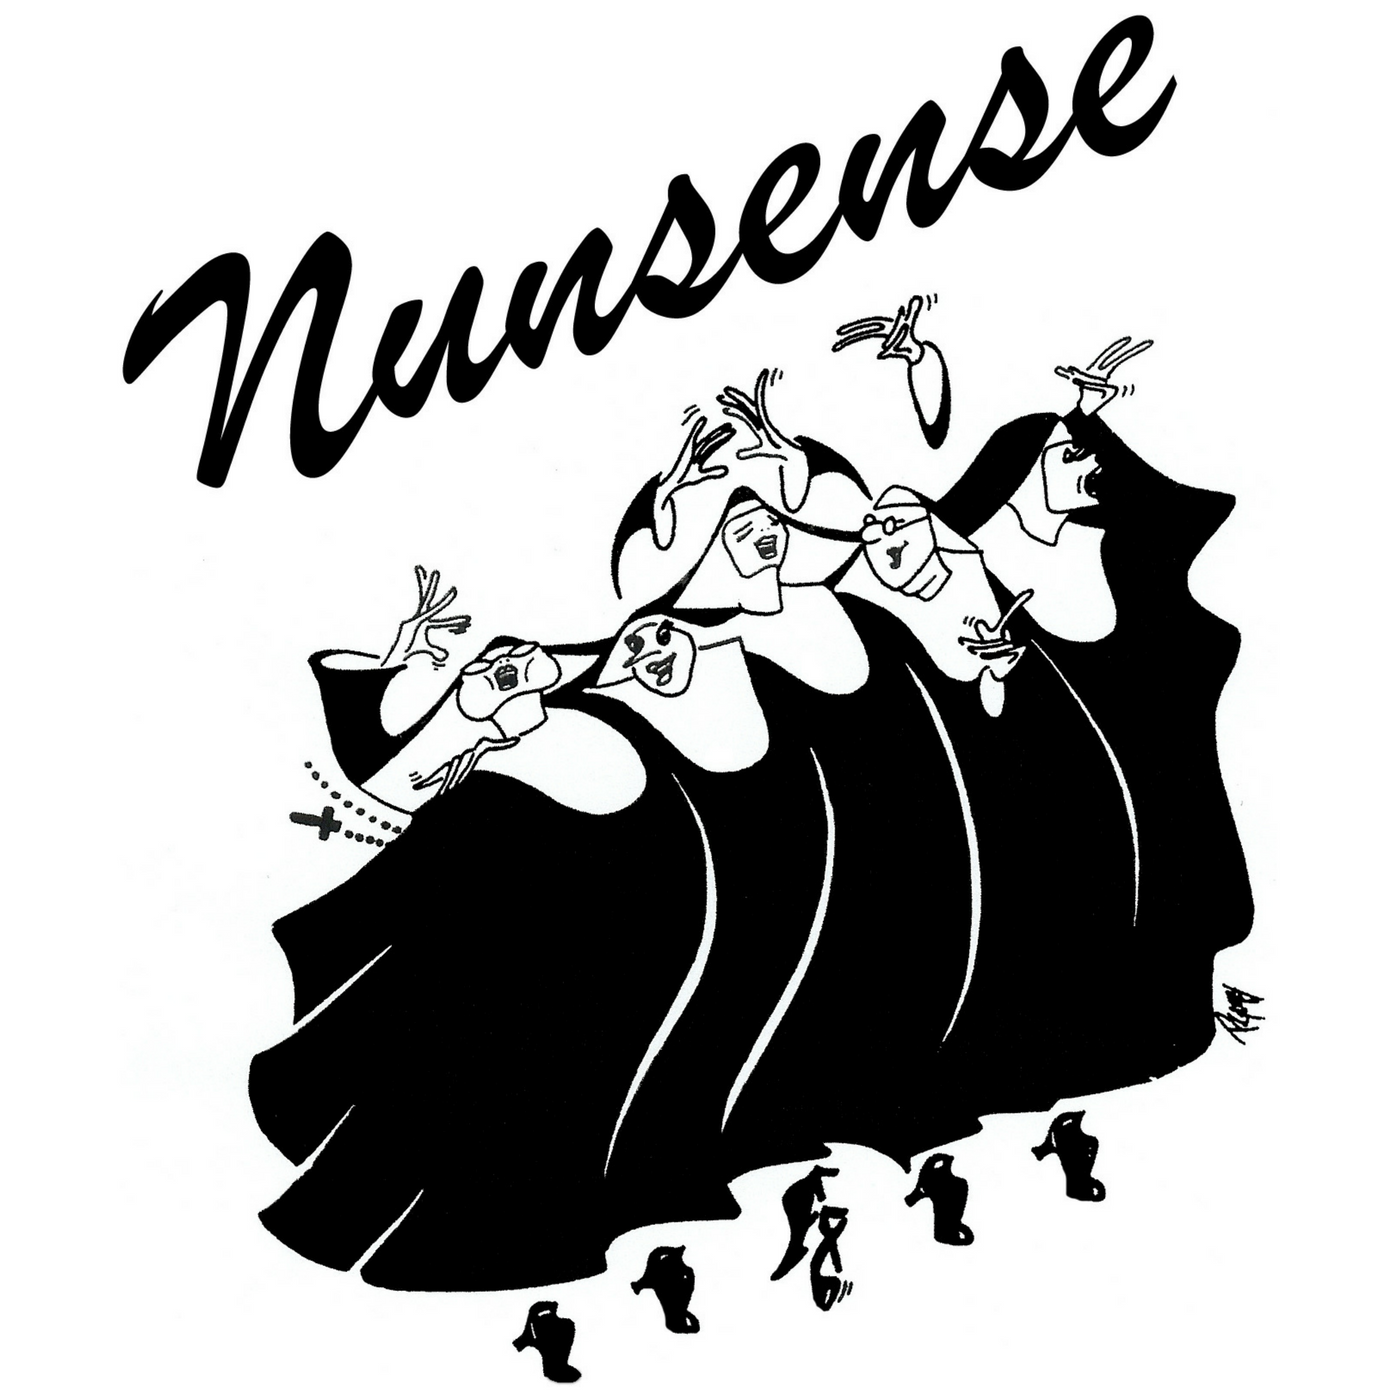 Nunsense - by Dan GogginDirected by David MetcalfFebruary 27, 28 and 29 and March 1, 5, 6, 7, and 8.Don't miss this perennially popular musical comedy! The nuns are nervous about their upcoming talent show. The five sister survivors hail from the Little Sisters of Hoboken nunnery. They're the last ones standing, too, because the rest of the sisterhood has succumbed to botulism after eating vichyssoise prepared by Sister Julia, Child of God. Will the singing sisters survive rehearsals and save the day?